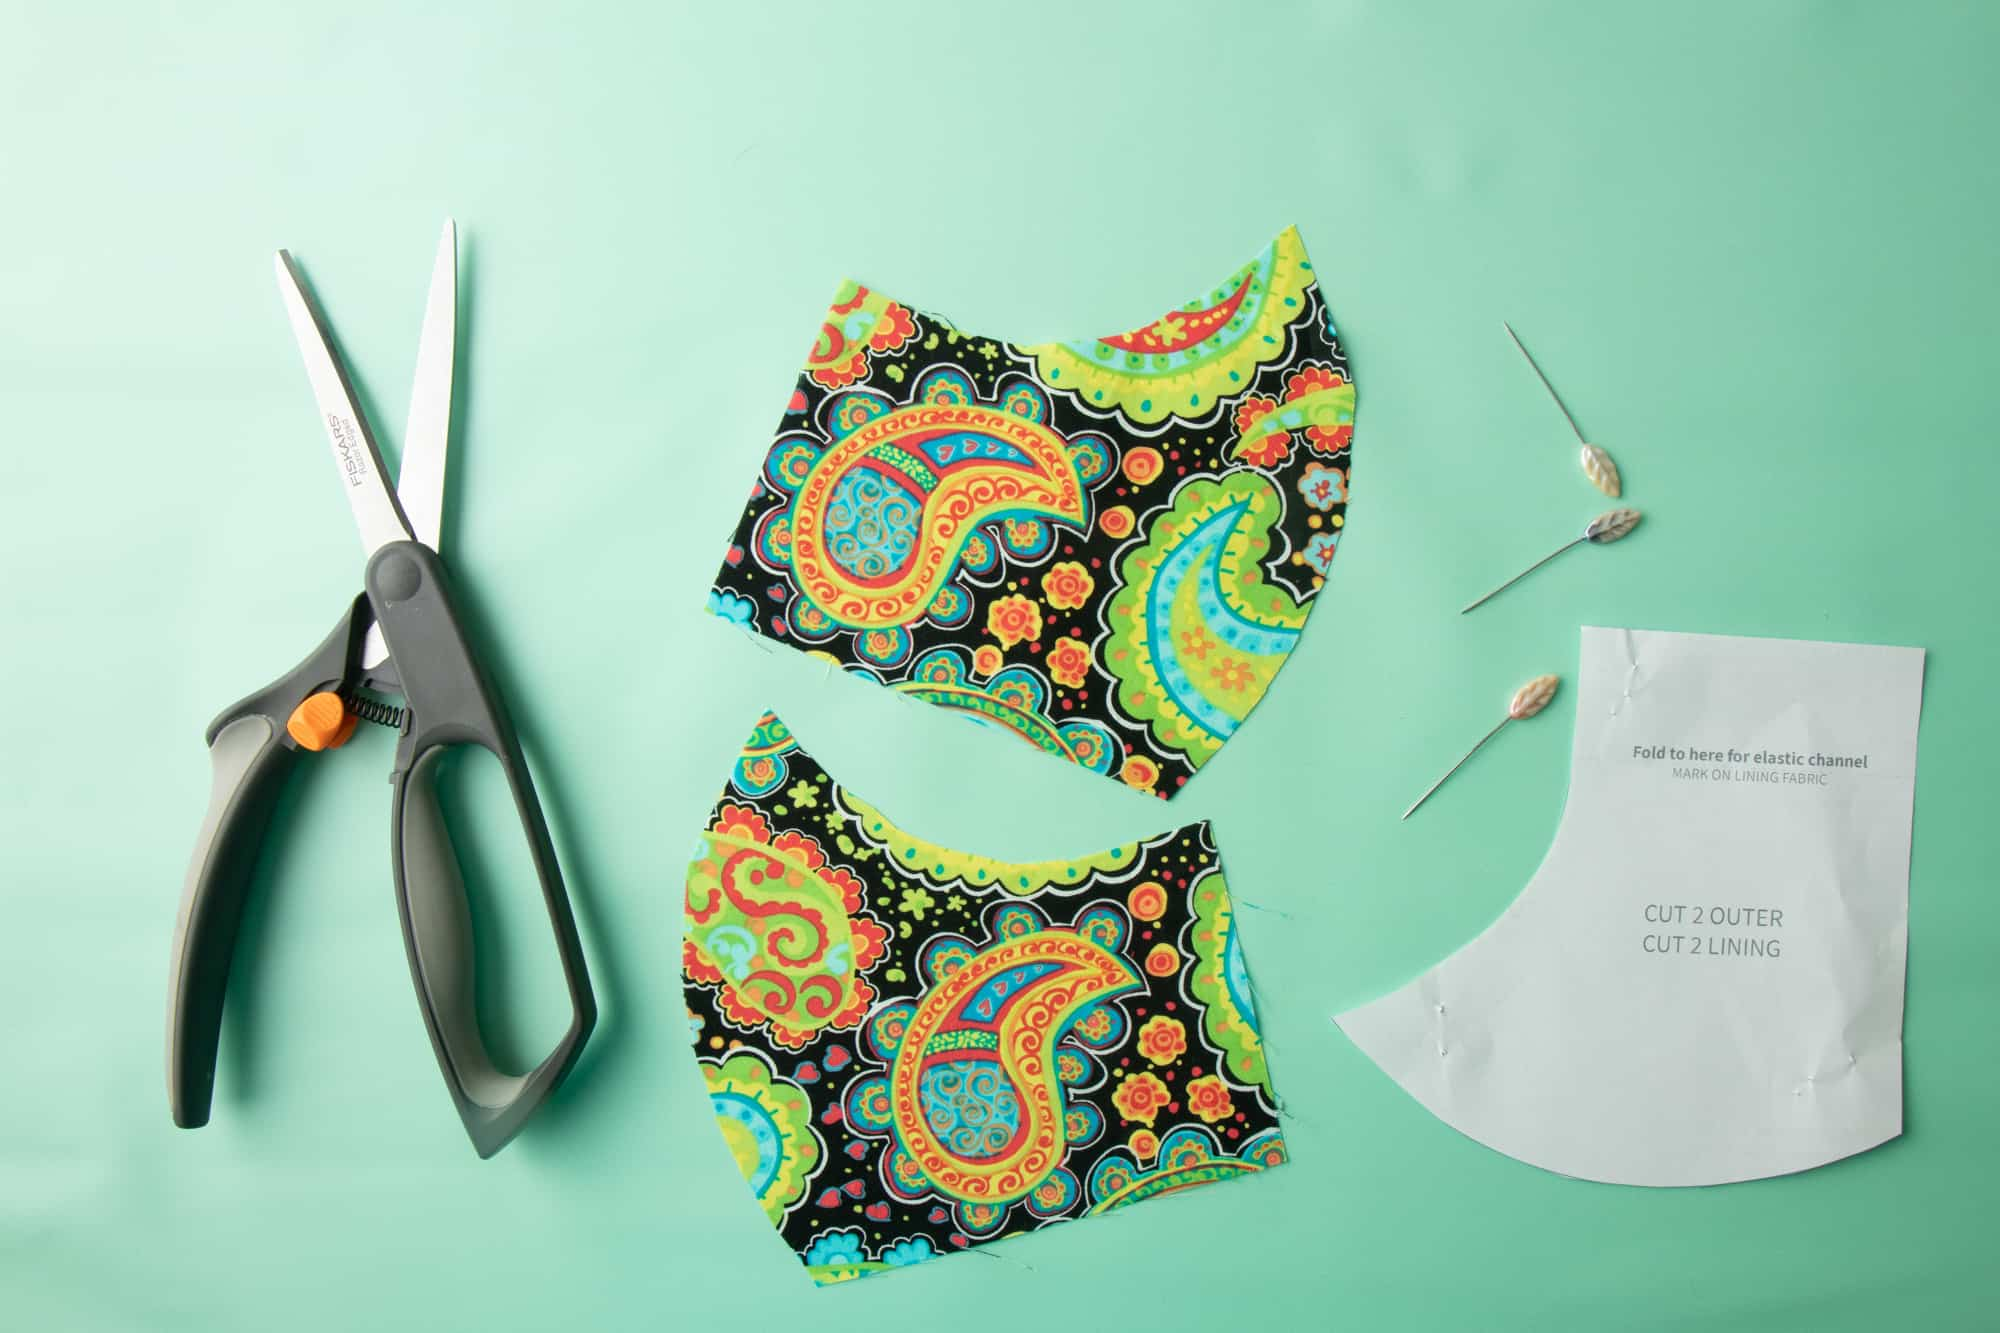 Scissors sit next to cut out fabric pieces, paper pattern pieces, and pins.